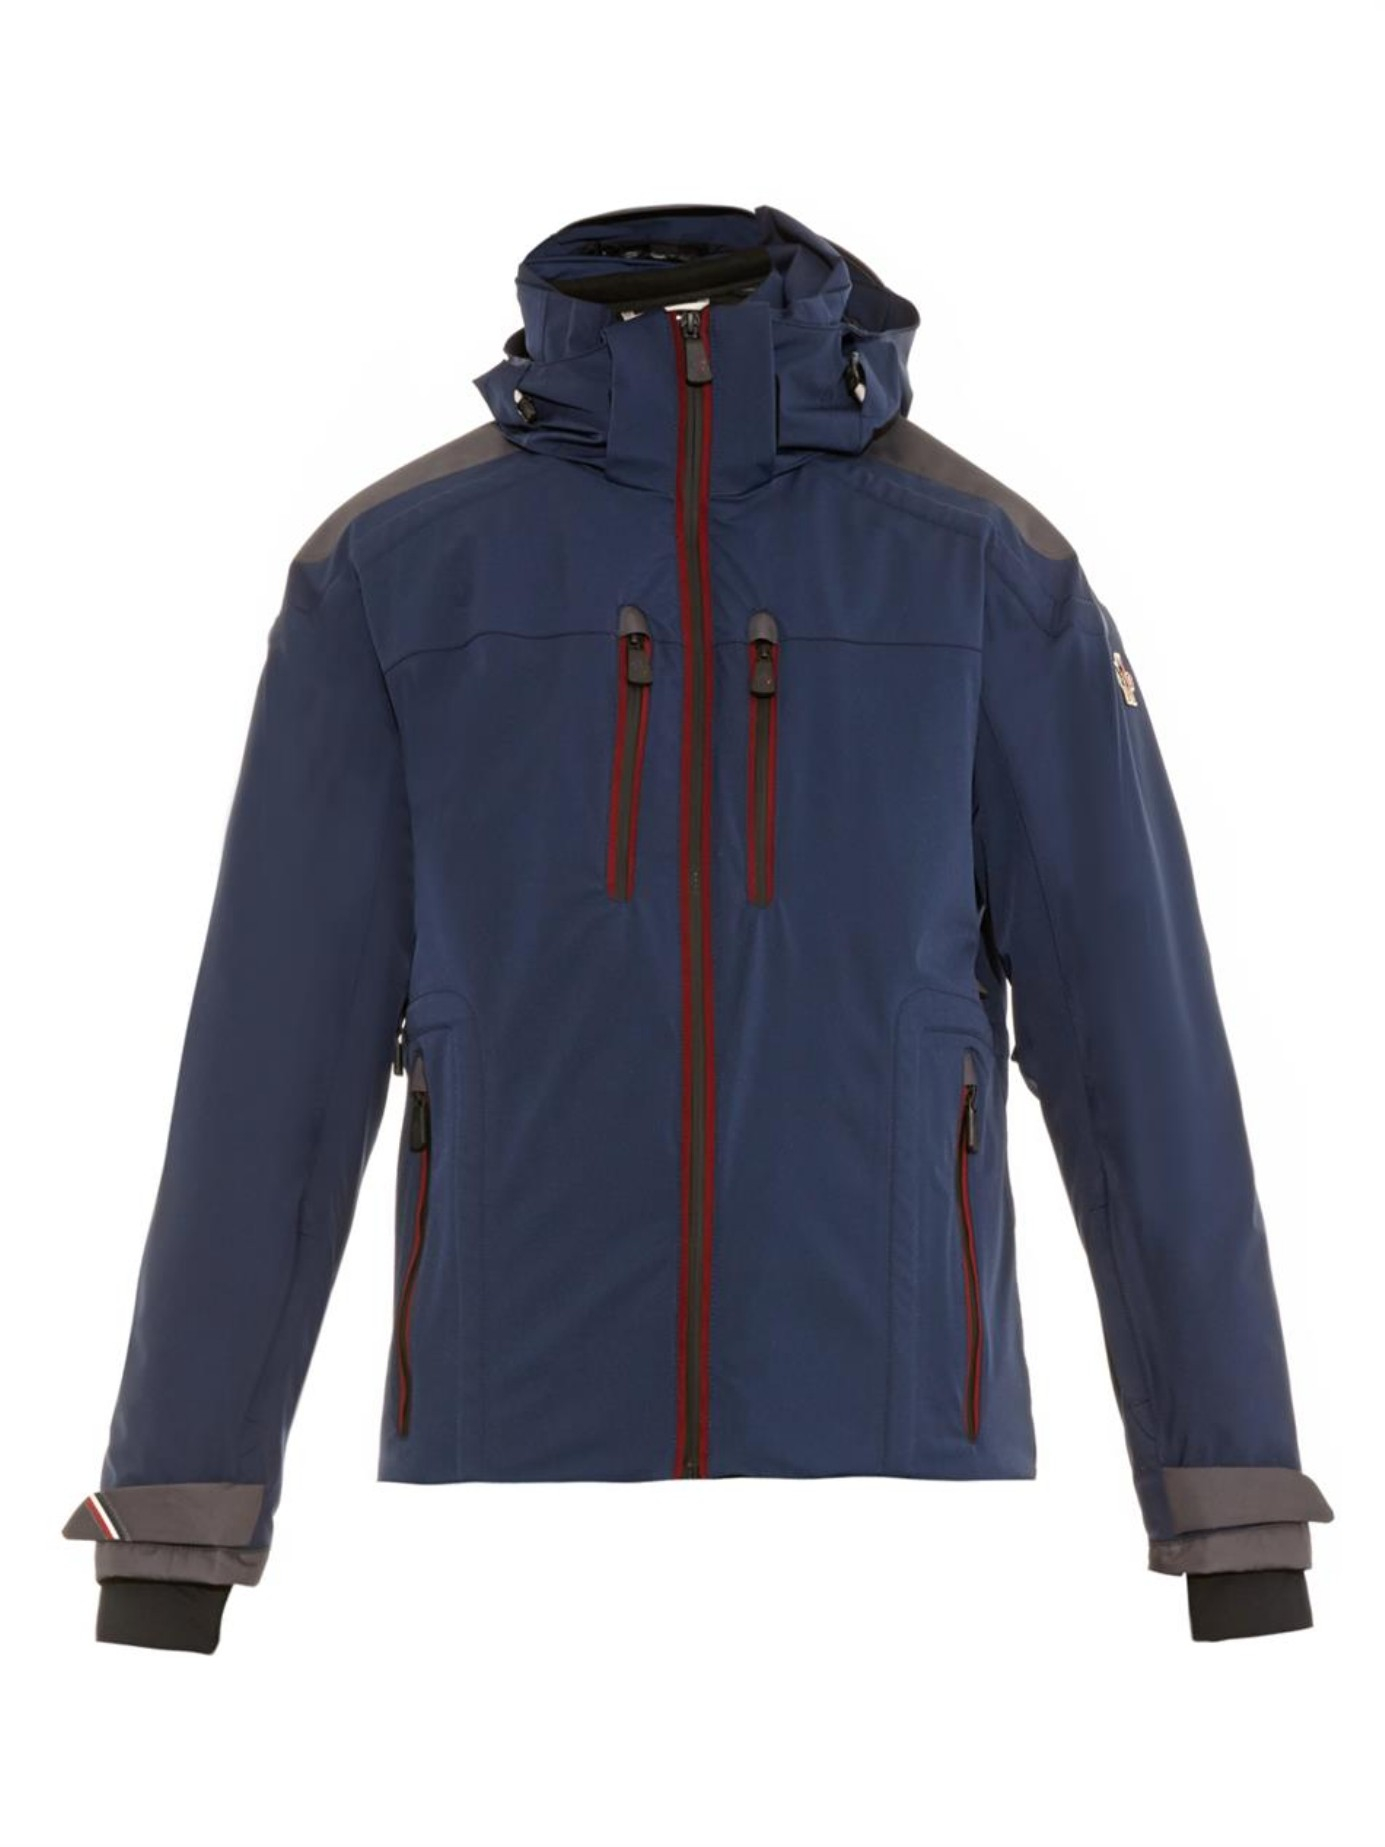 inexpensive moncler grenoble ajaccio recco ski jacket in blue for men lyst  2efeb 9ff0b f99a6086c